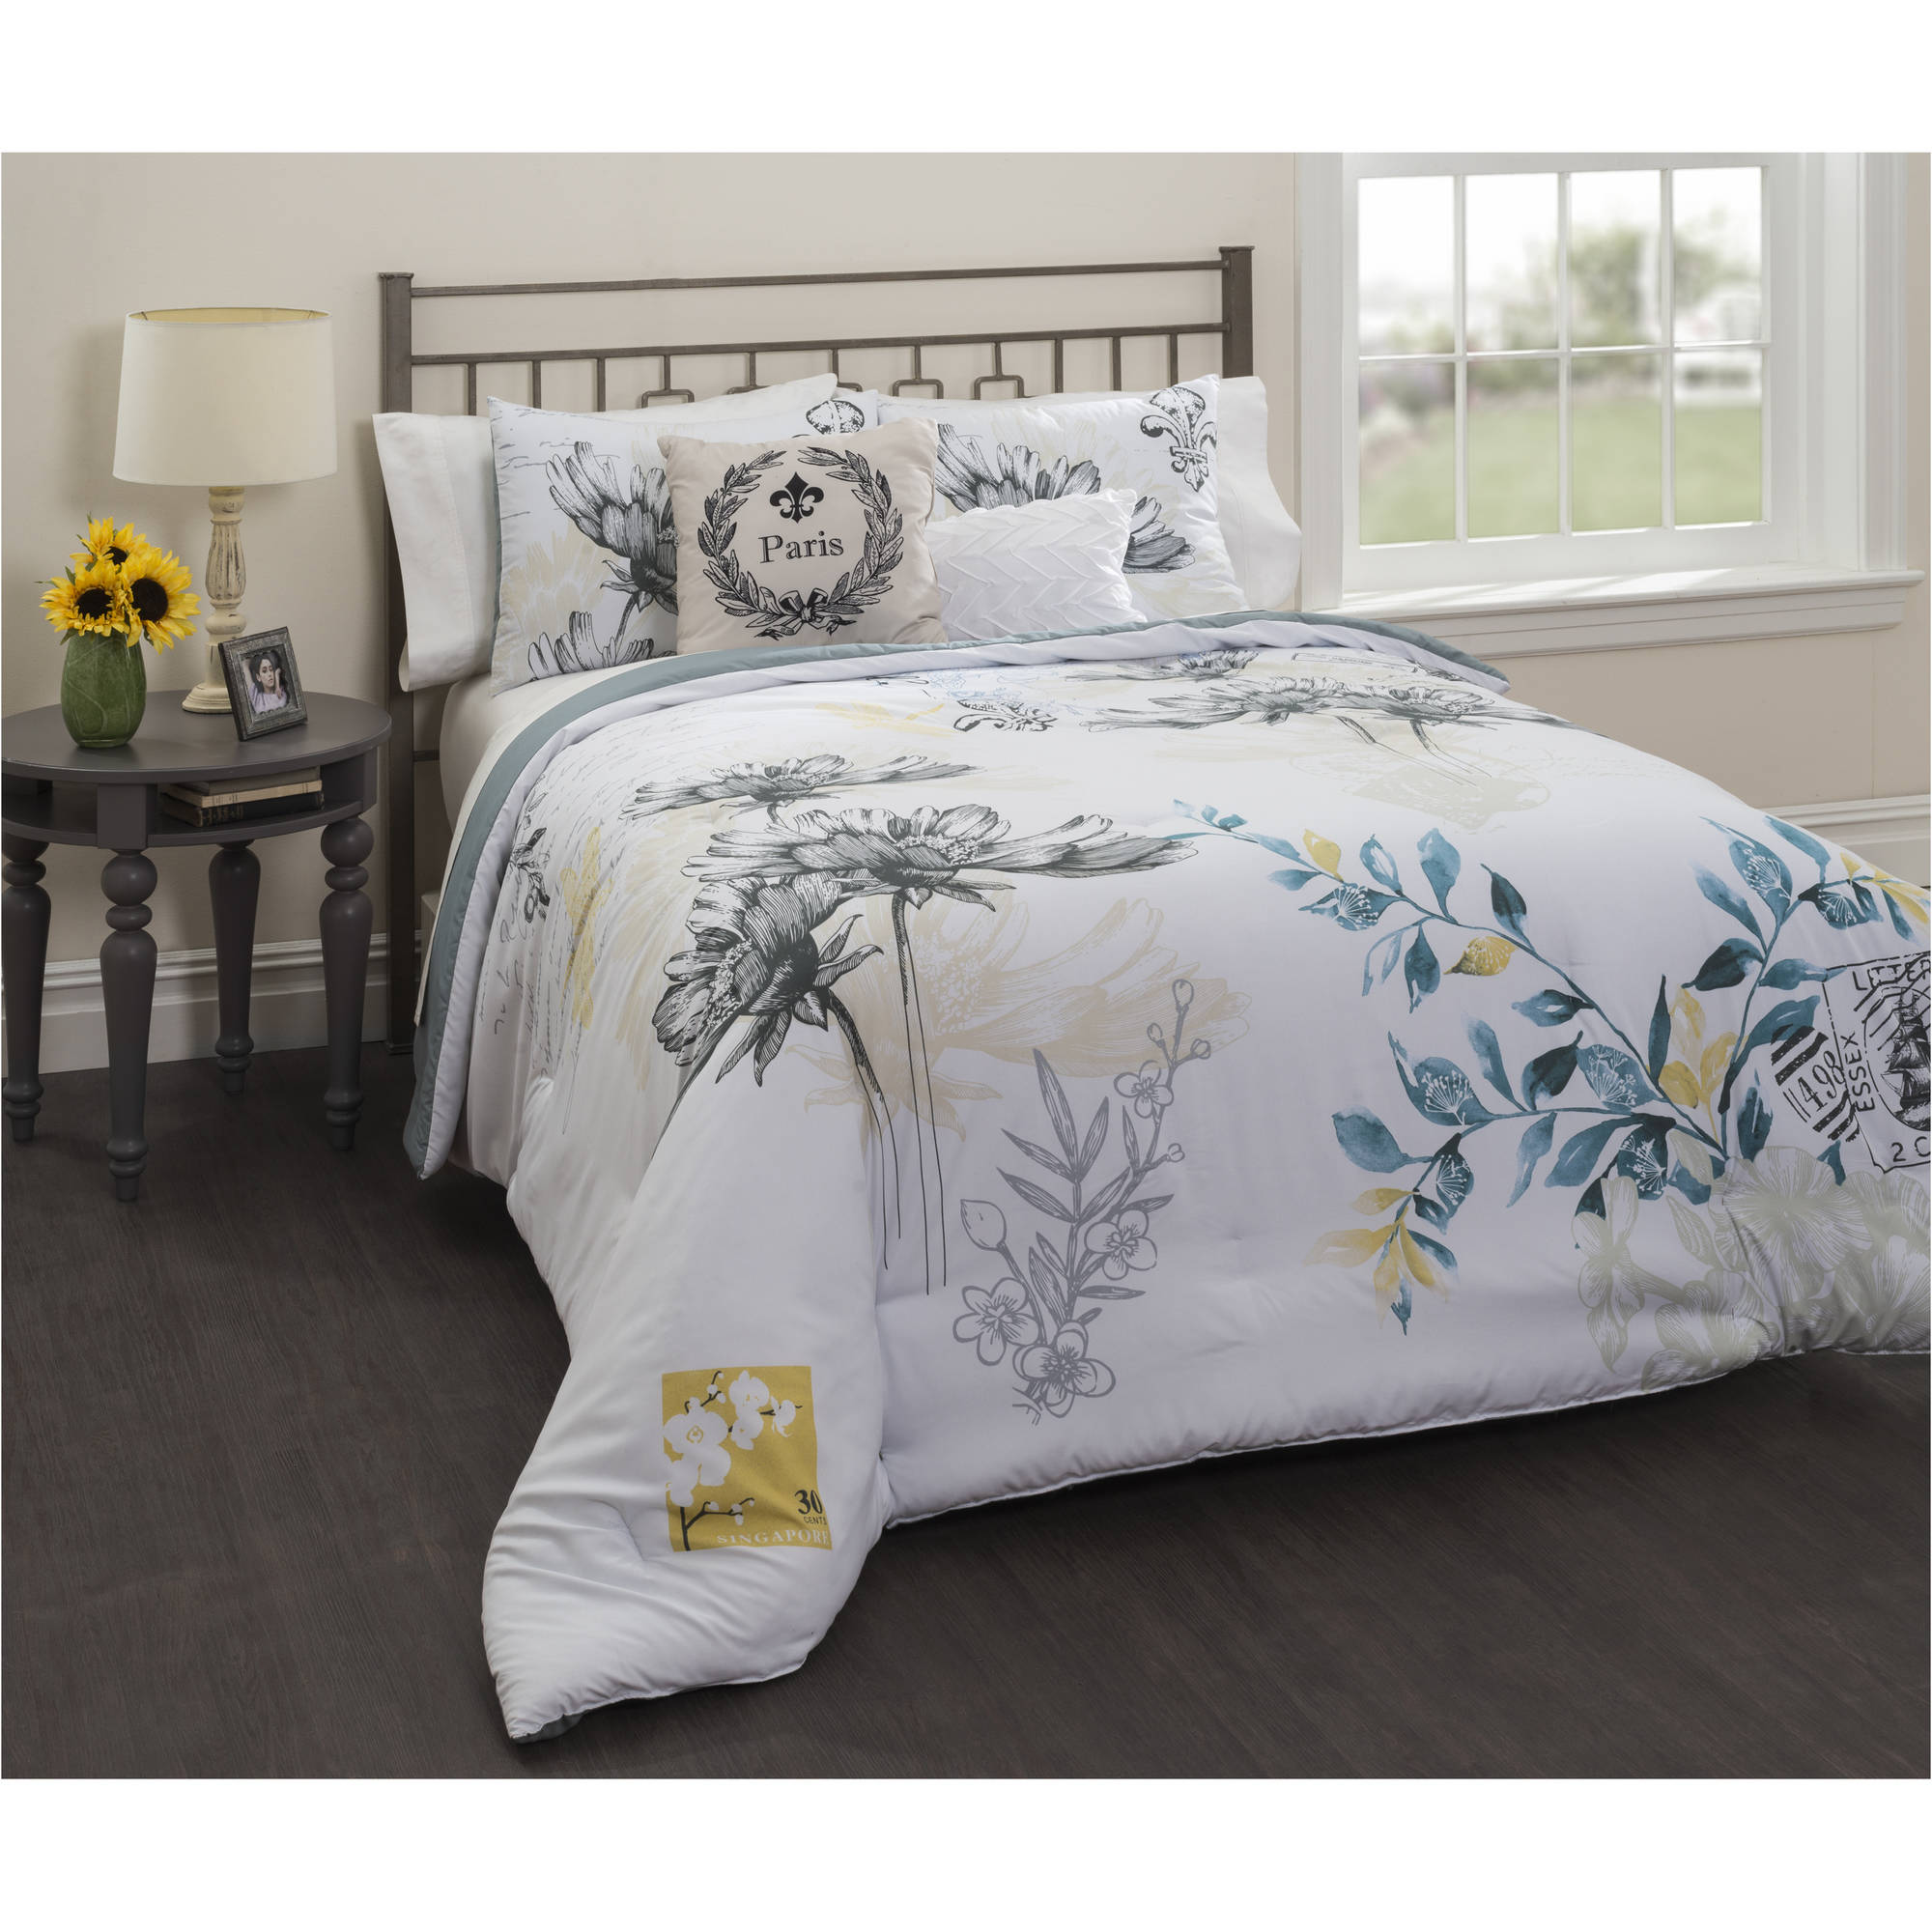 Casa Lyon 5-Piece Comforter Bedding Set